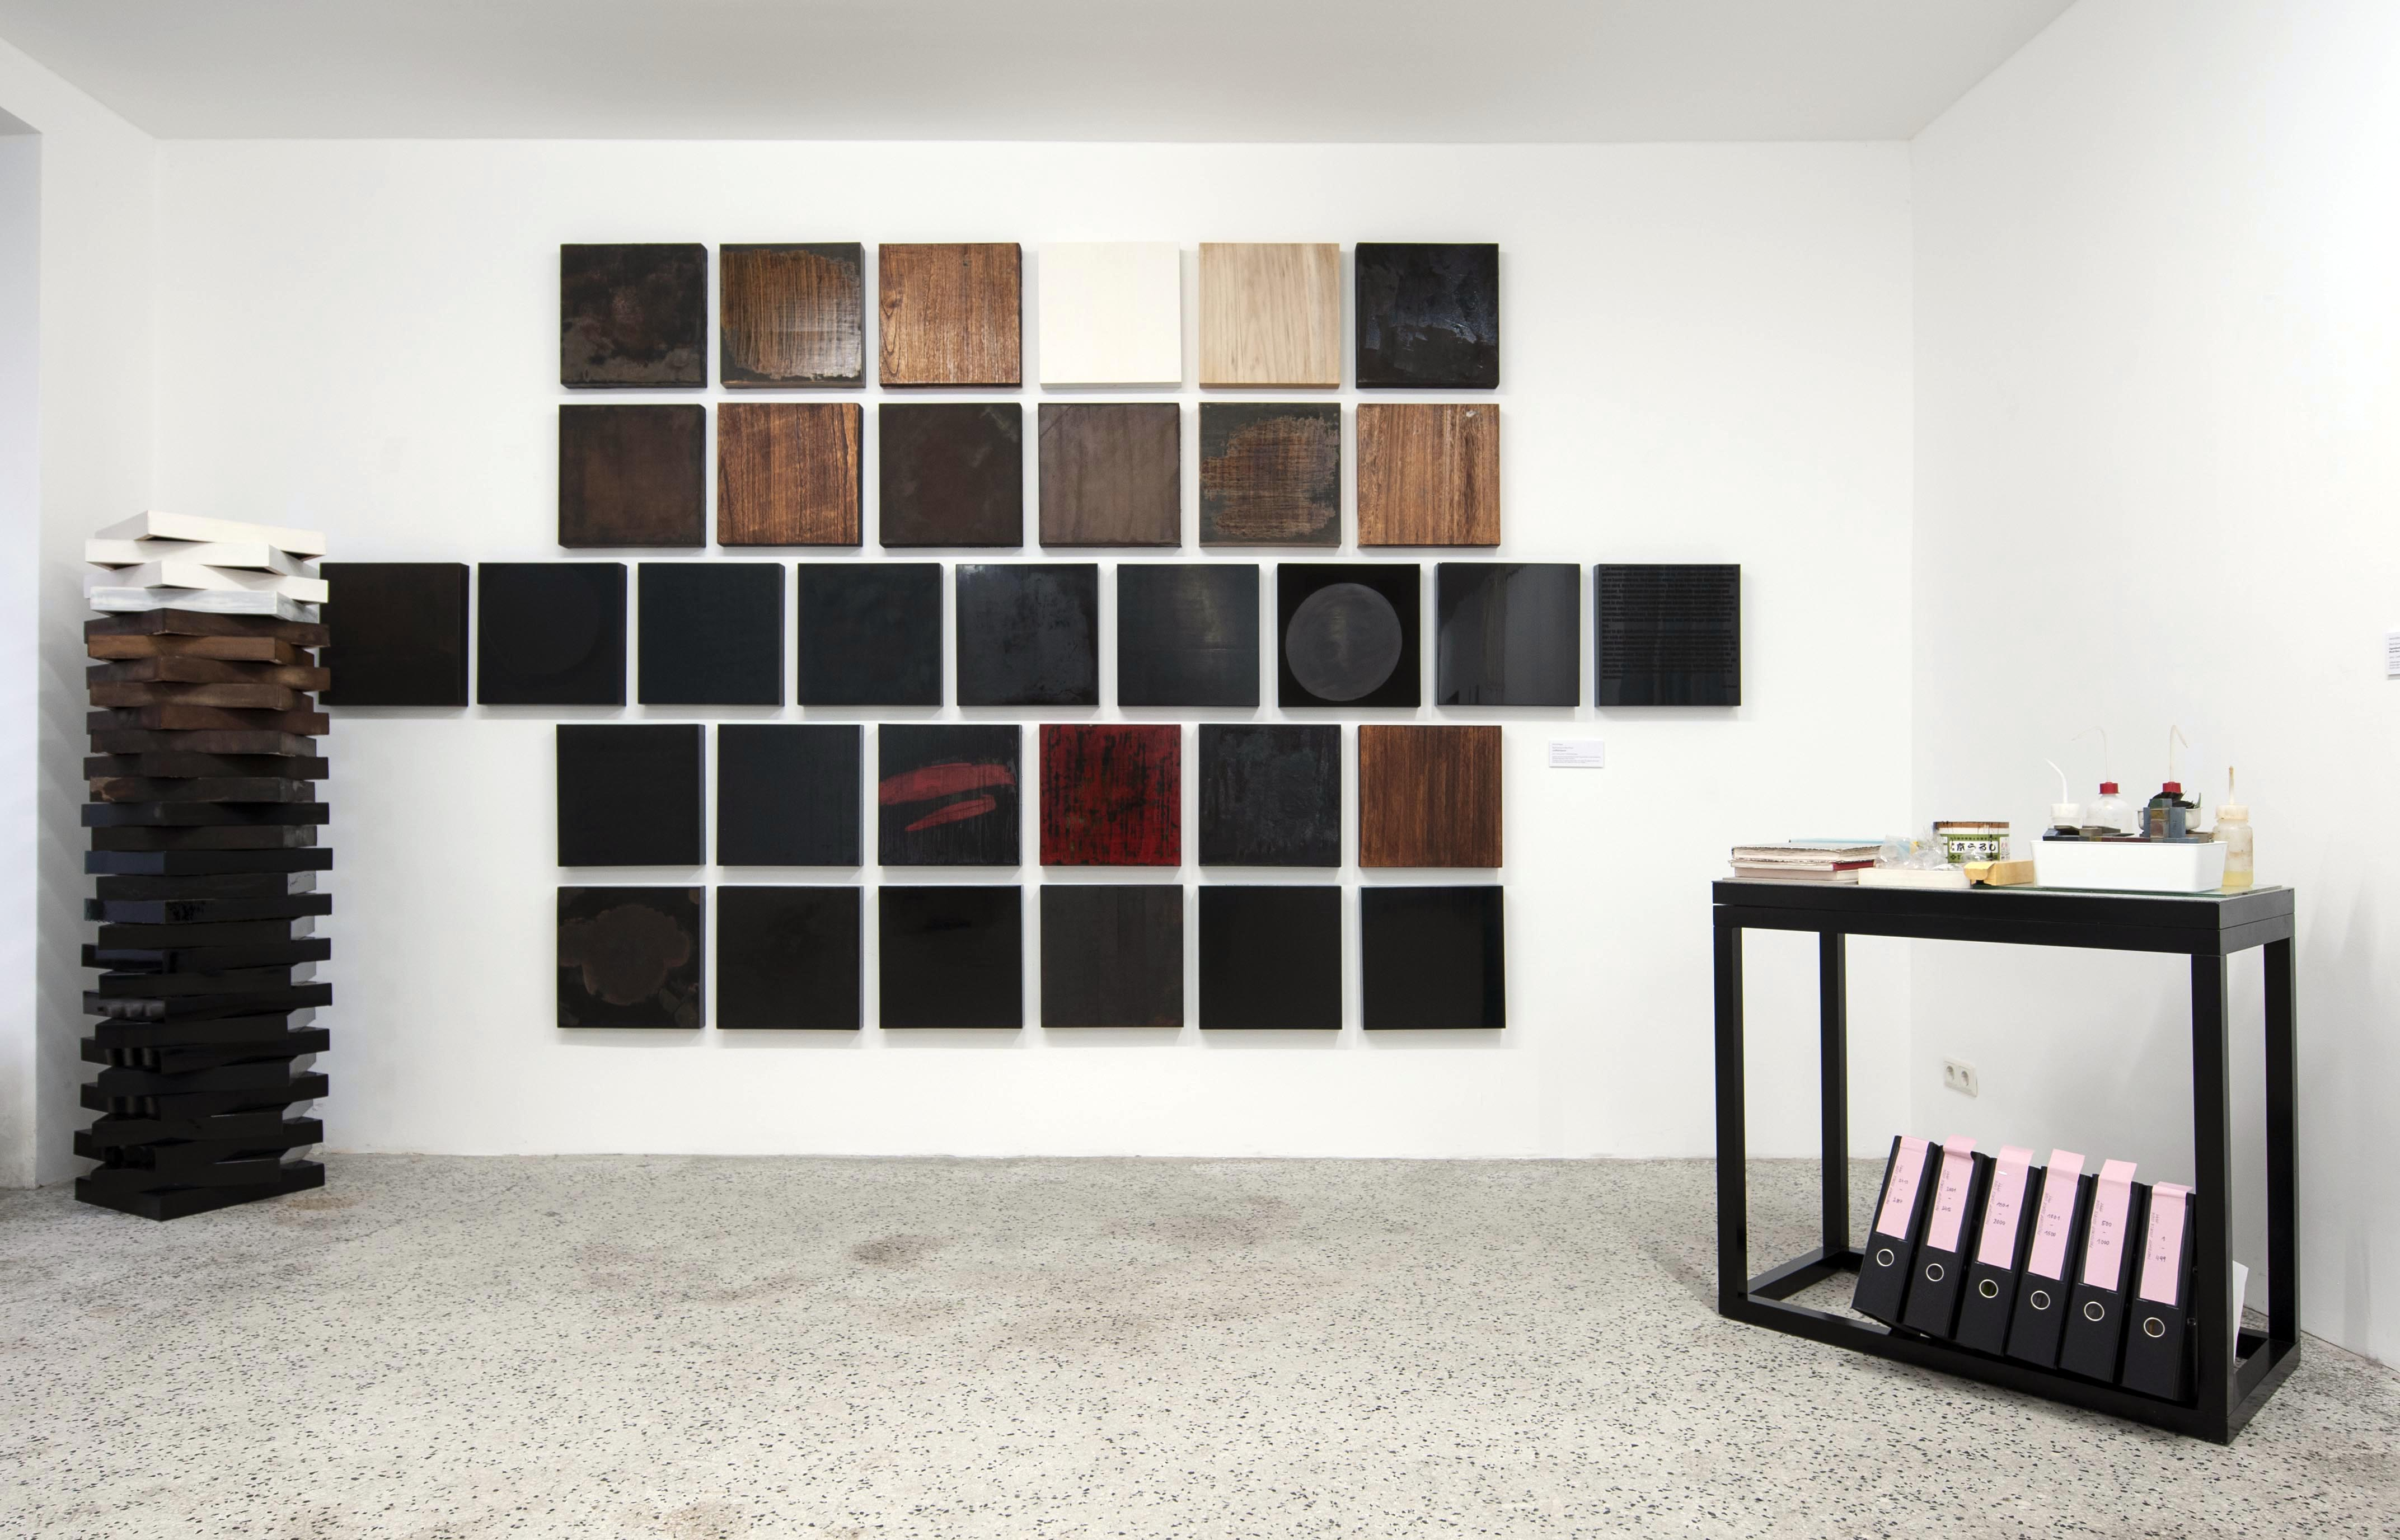 Astrid Edlinger | '100 Black Squares', exhibition view 2019